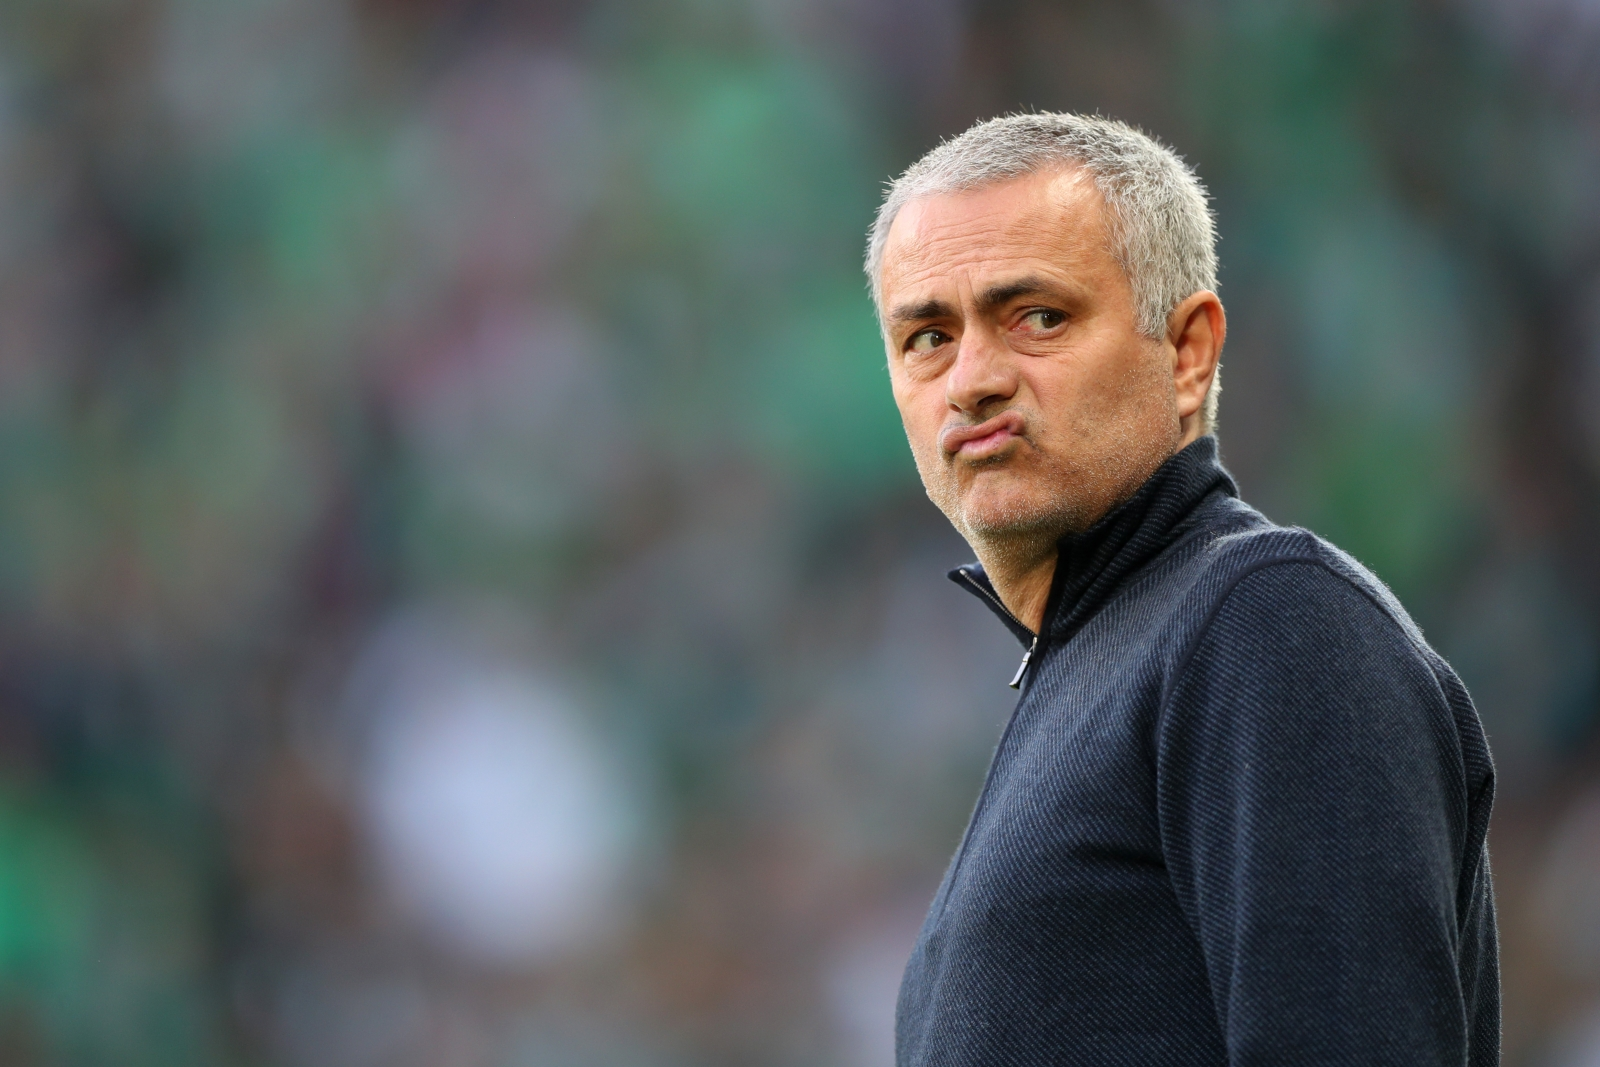 Jose Mourinho rips into Manchester United 'attitude' after shock Huddersfield defeat